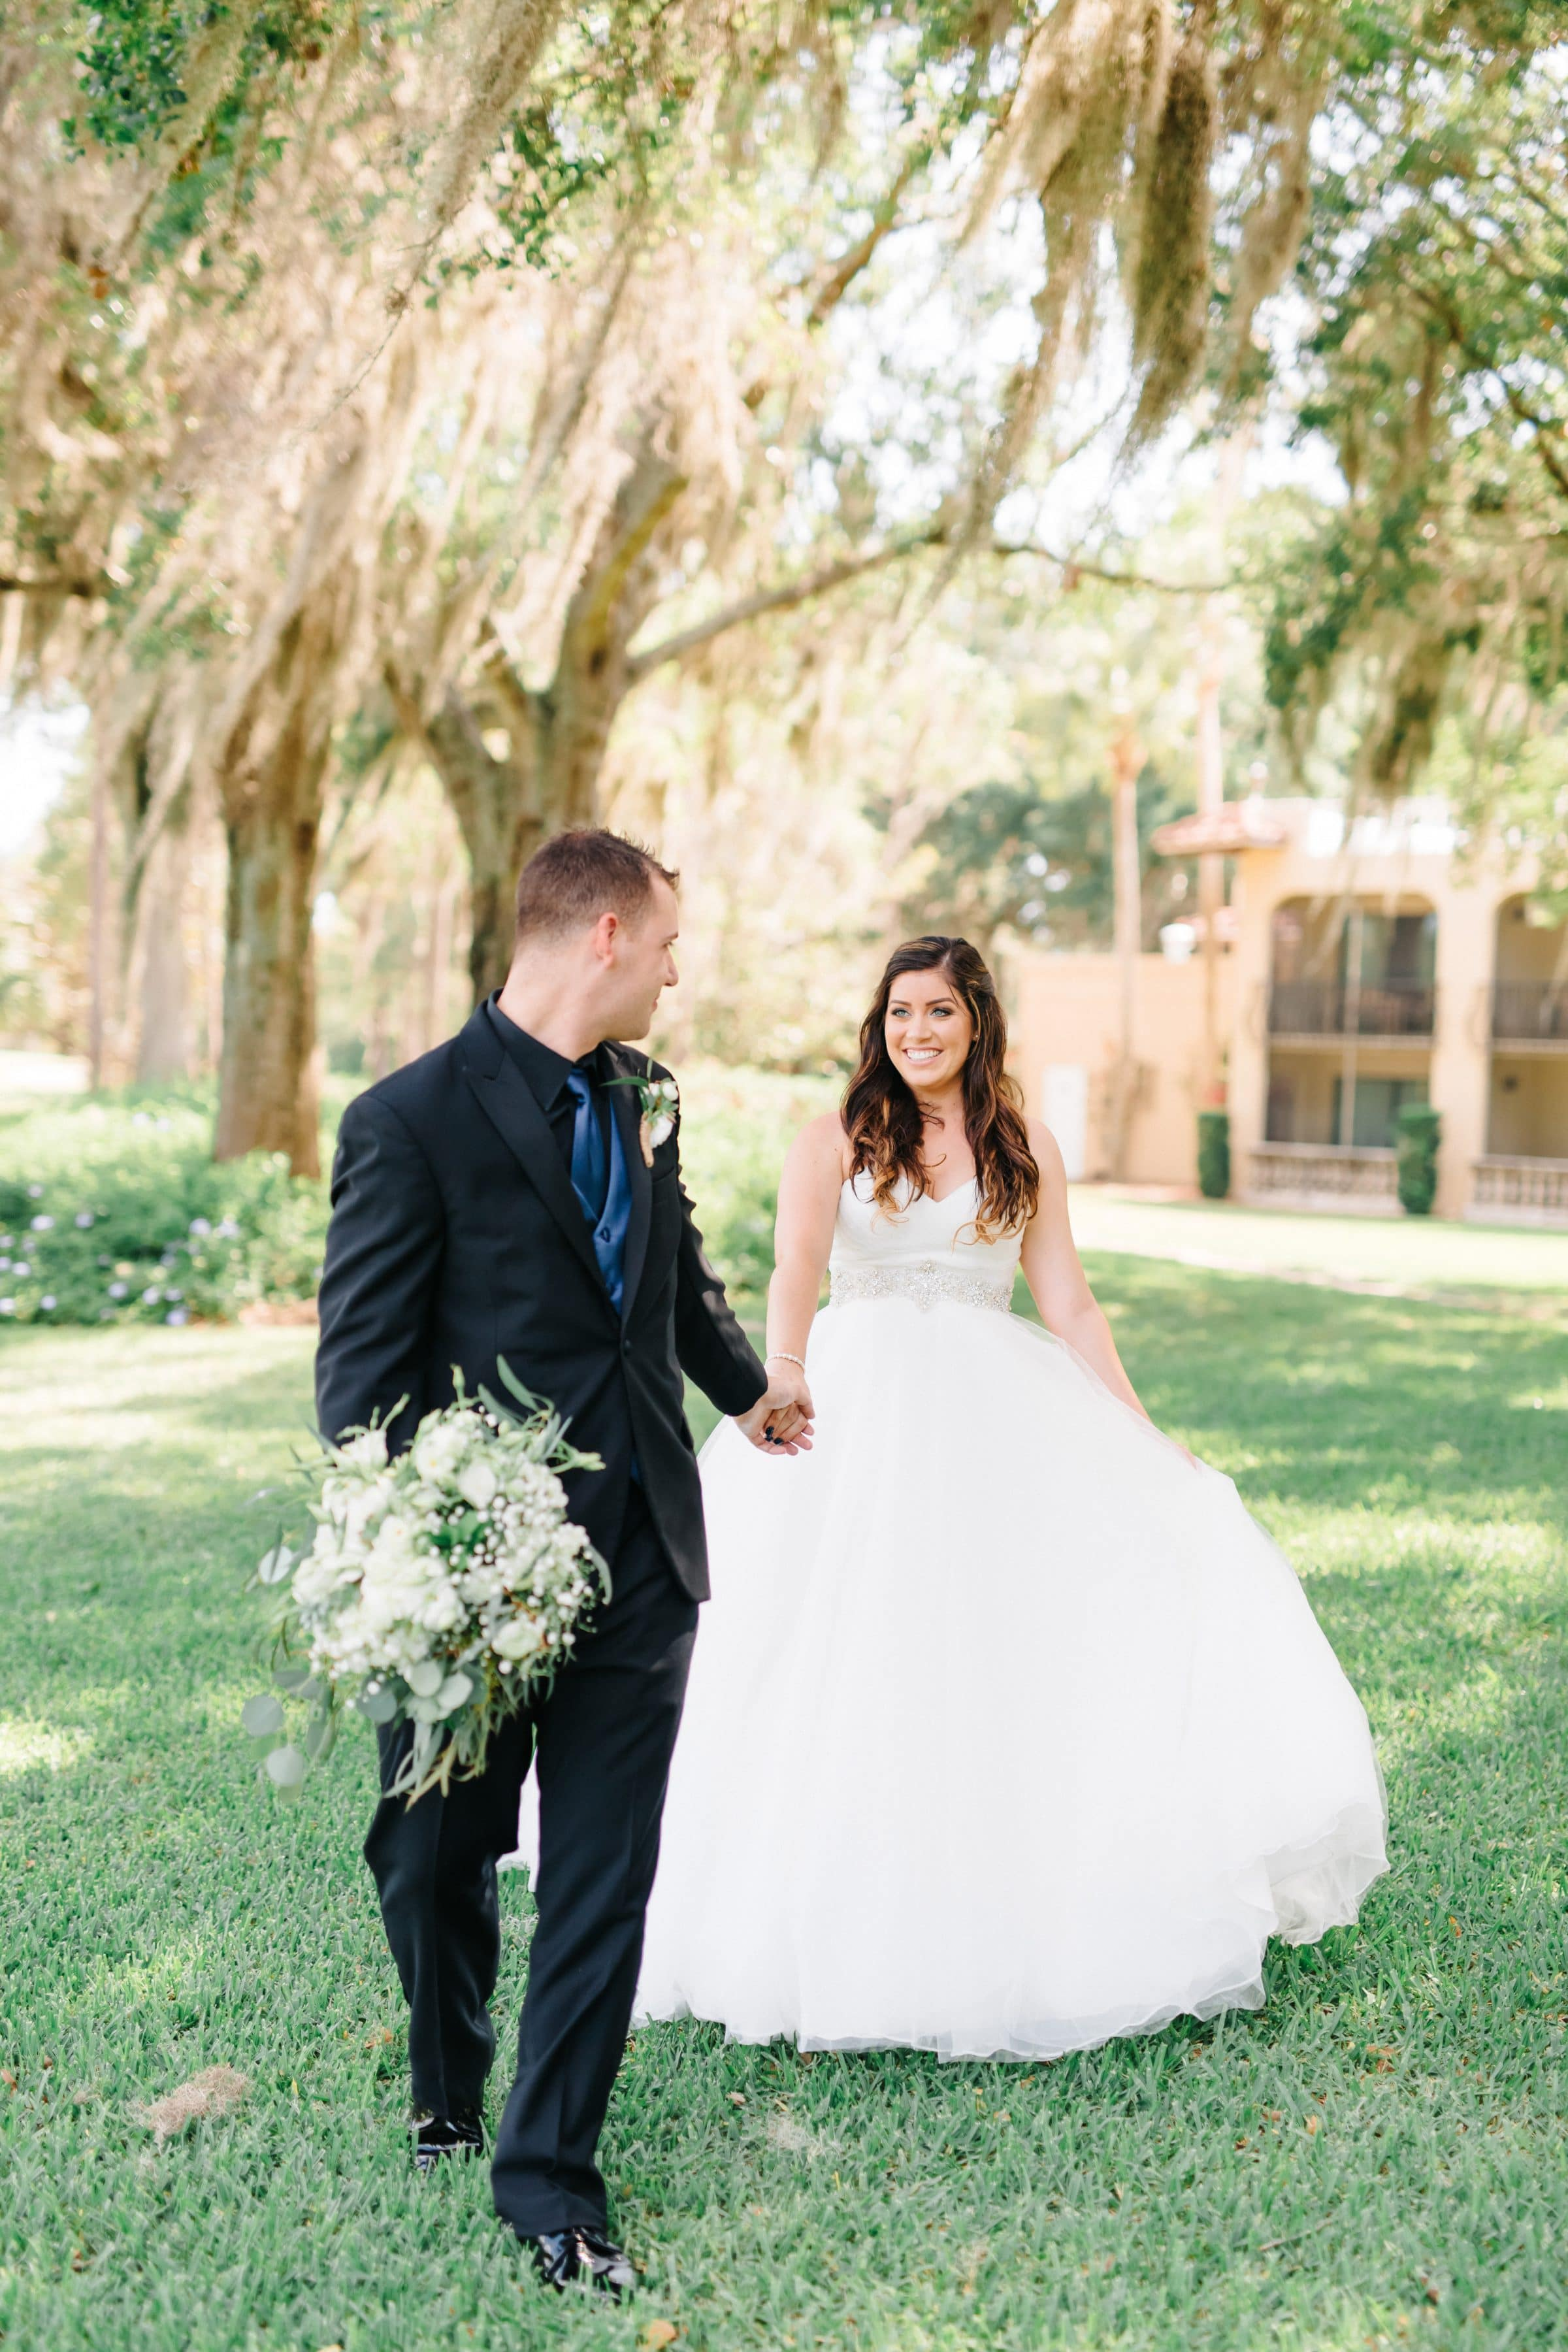 Groom holding bride's bouquet and leading her through lush field